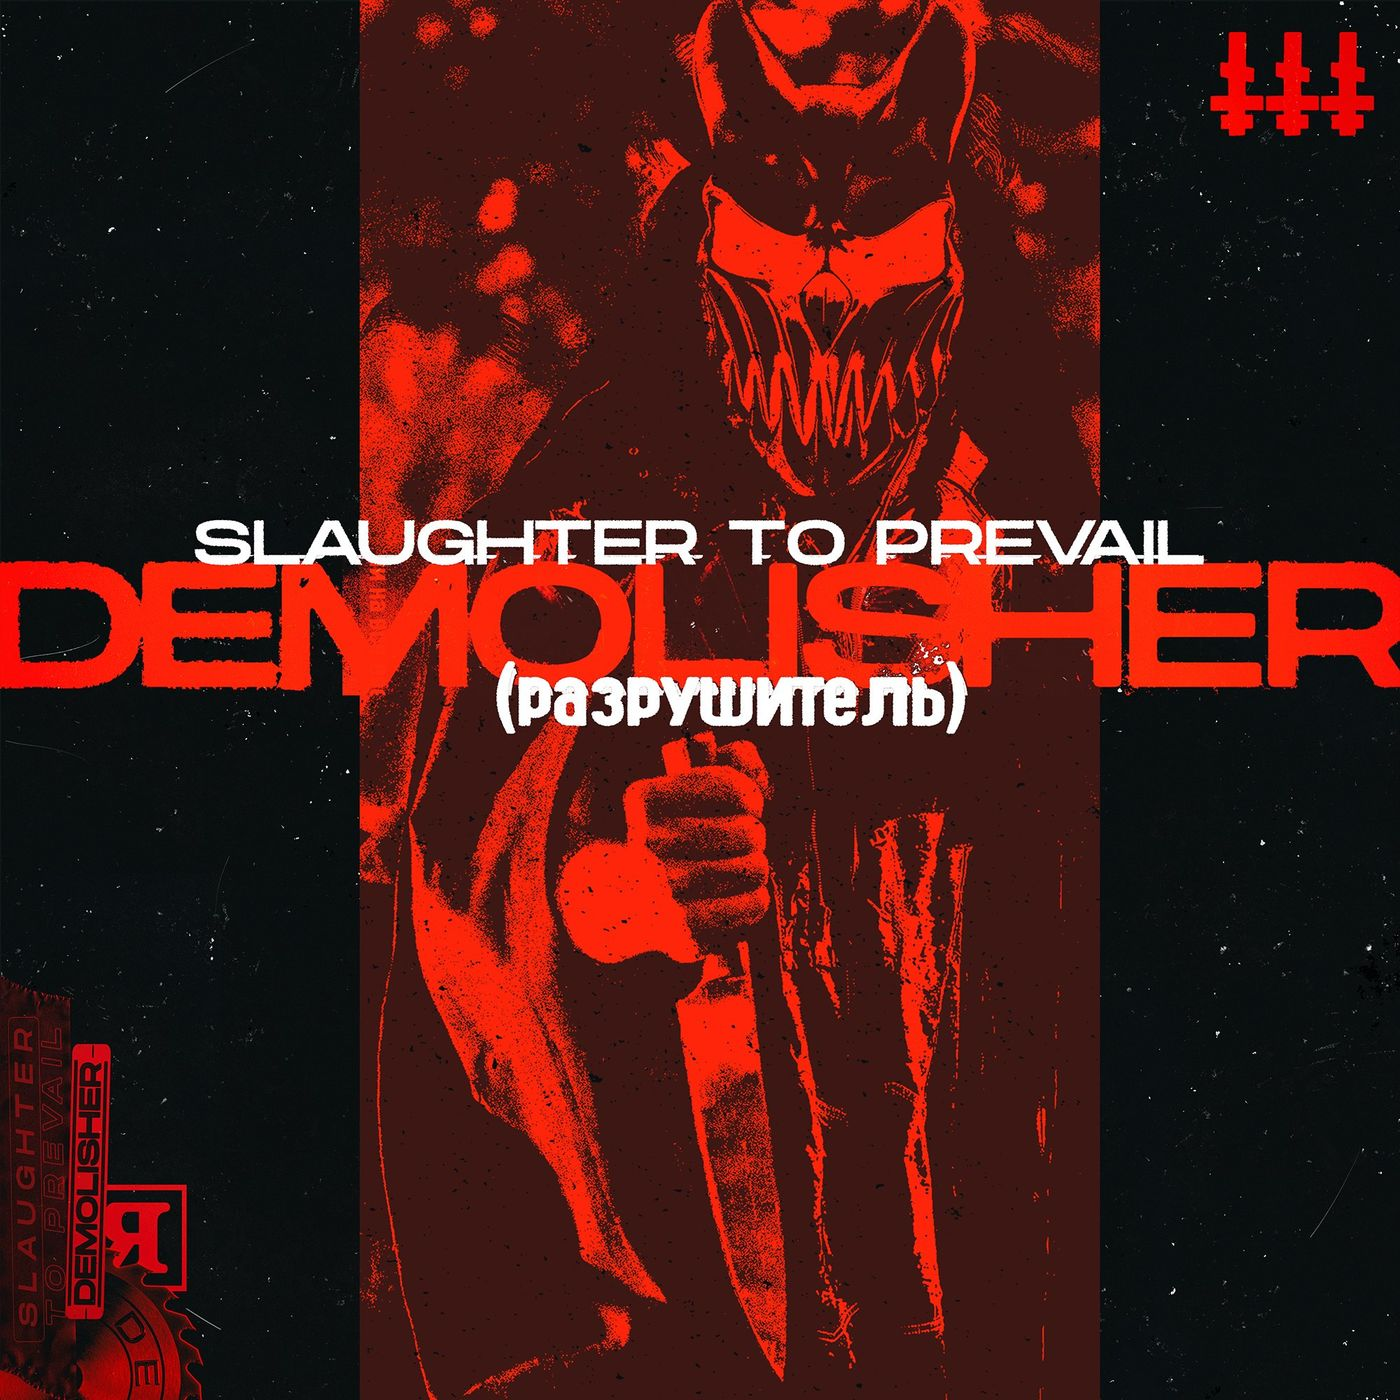 Slaughter to Prevail - Demolisher [single] (2020)